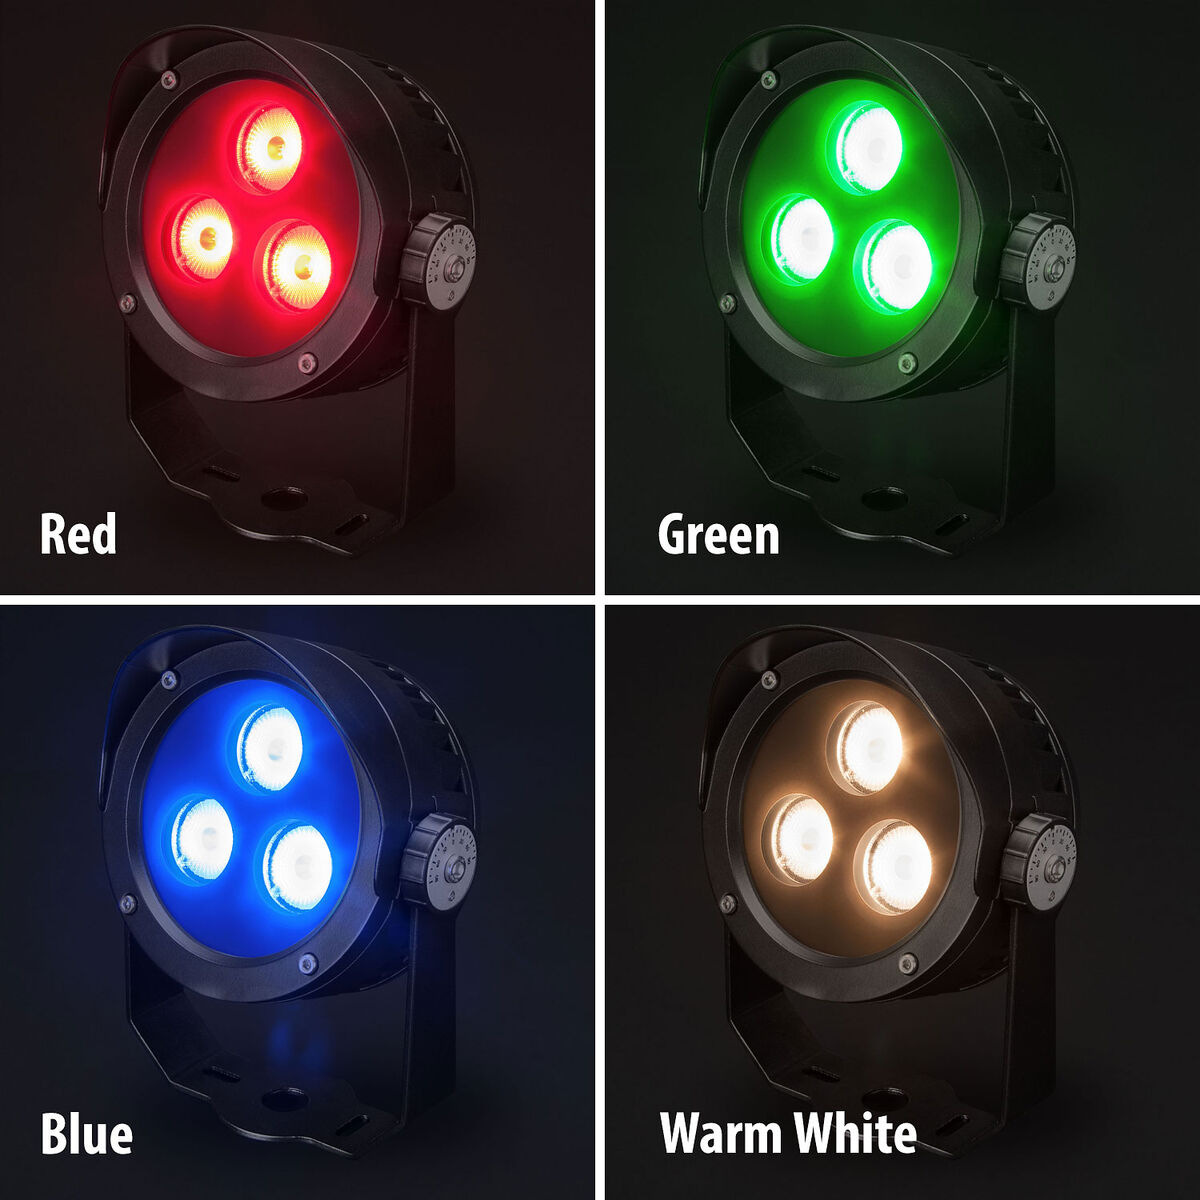 Beamer RGB + Warm White Dimmable LED Landscaping 12W Light - Beamer RGB + Warm White Dimmable LED Landscaping Flood 12W Light